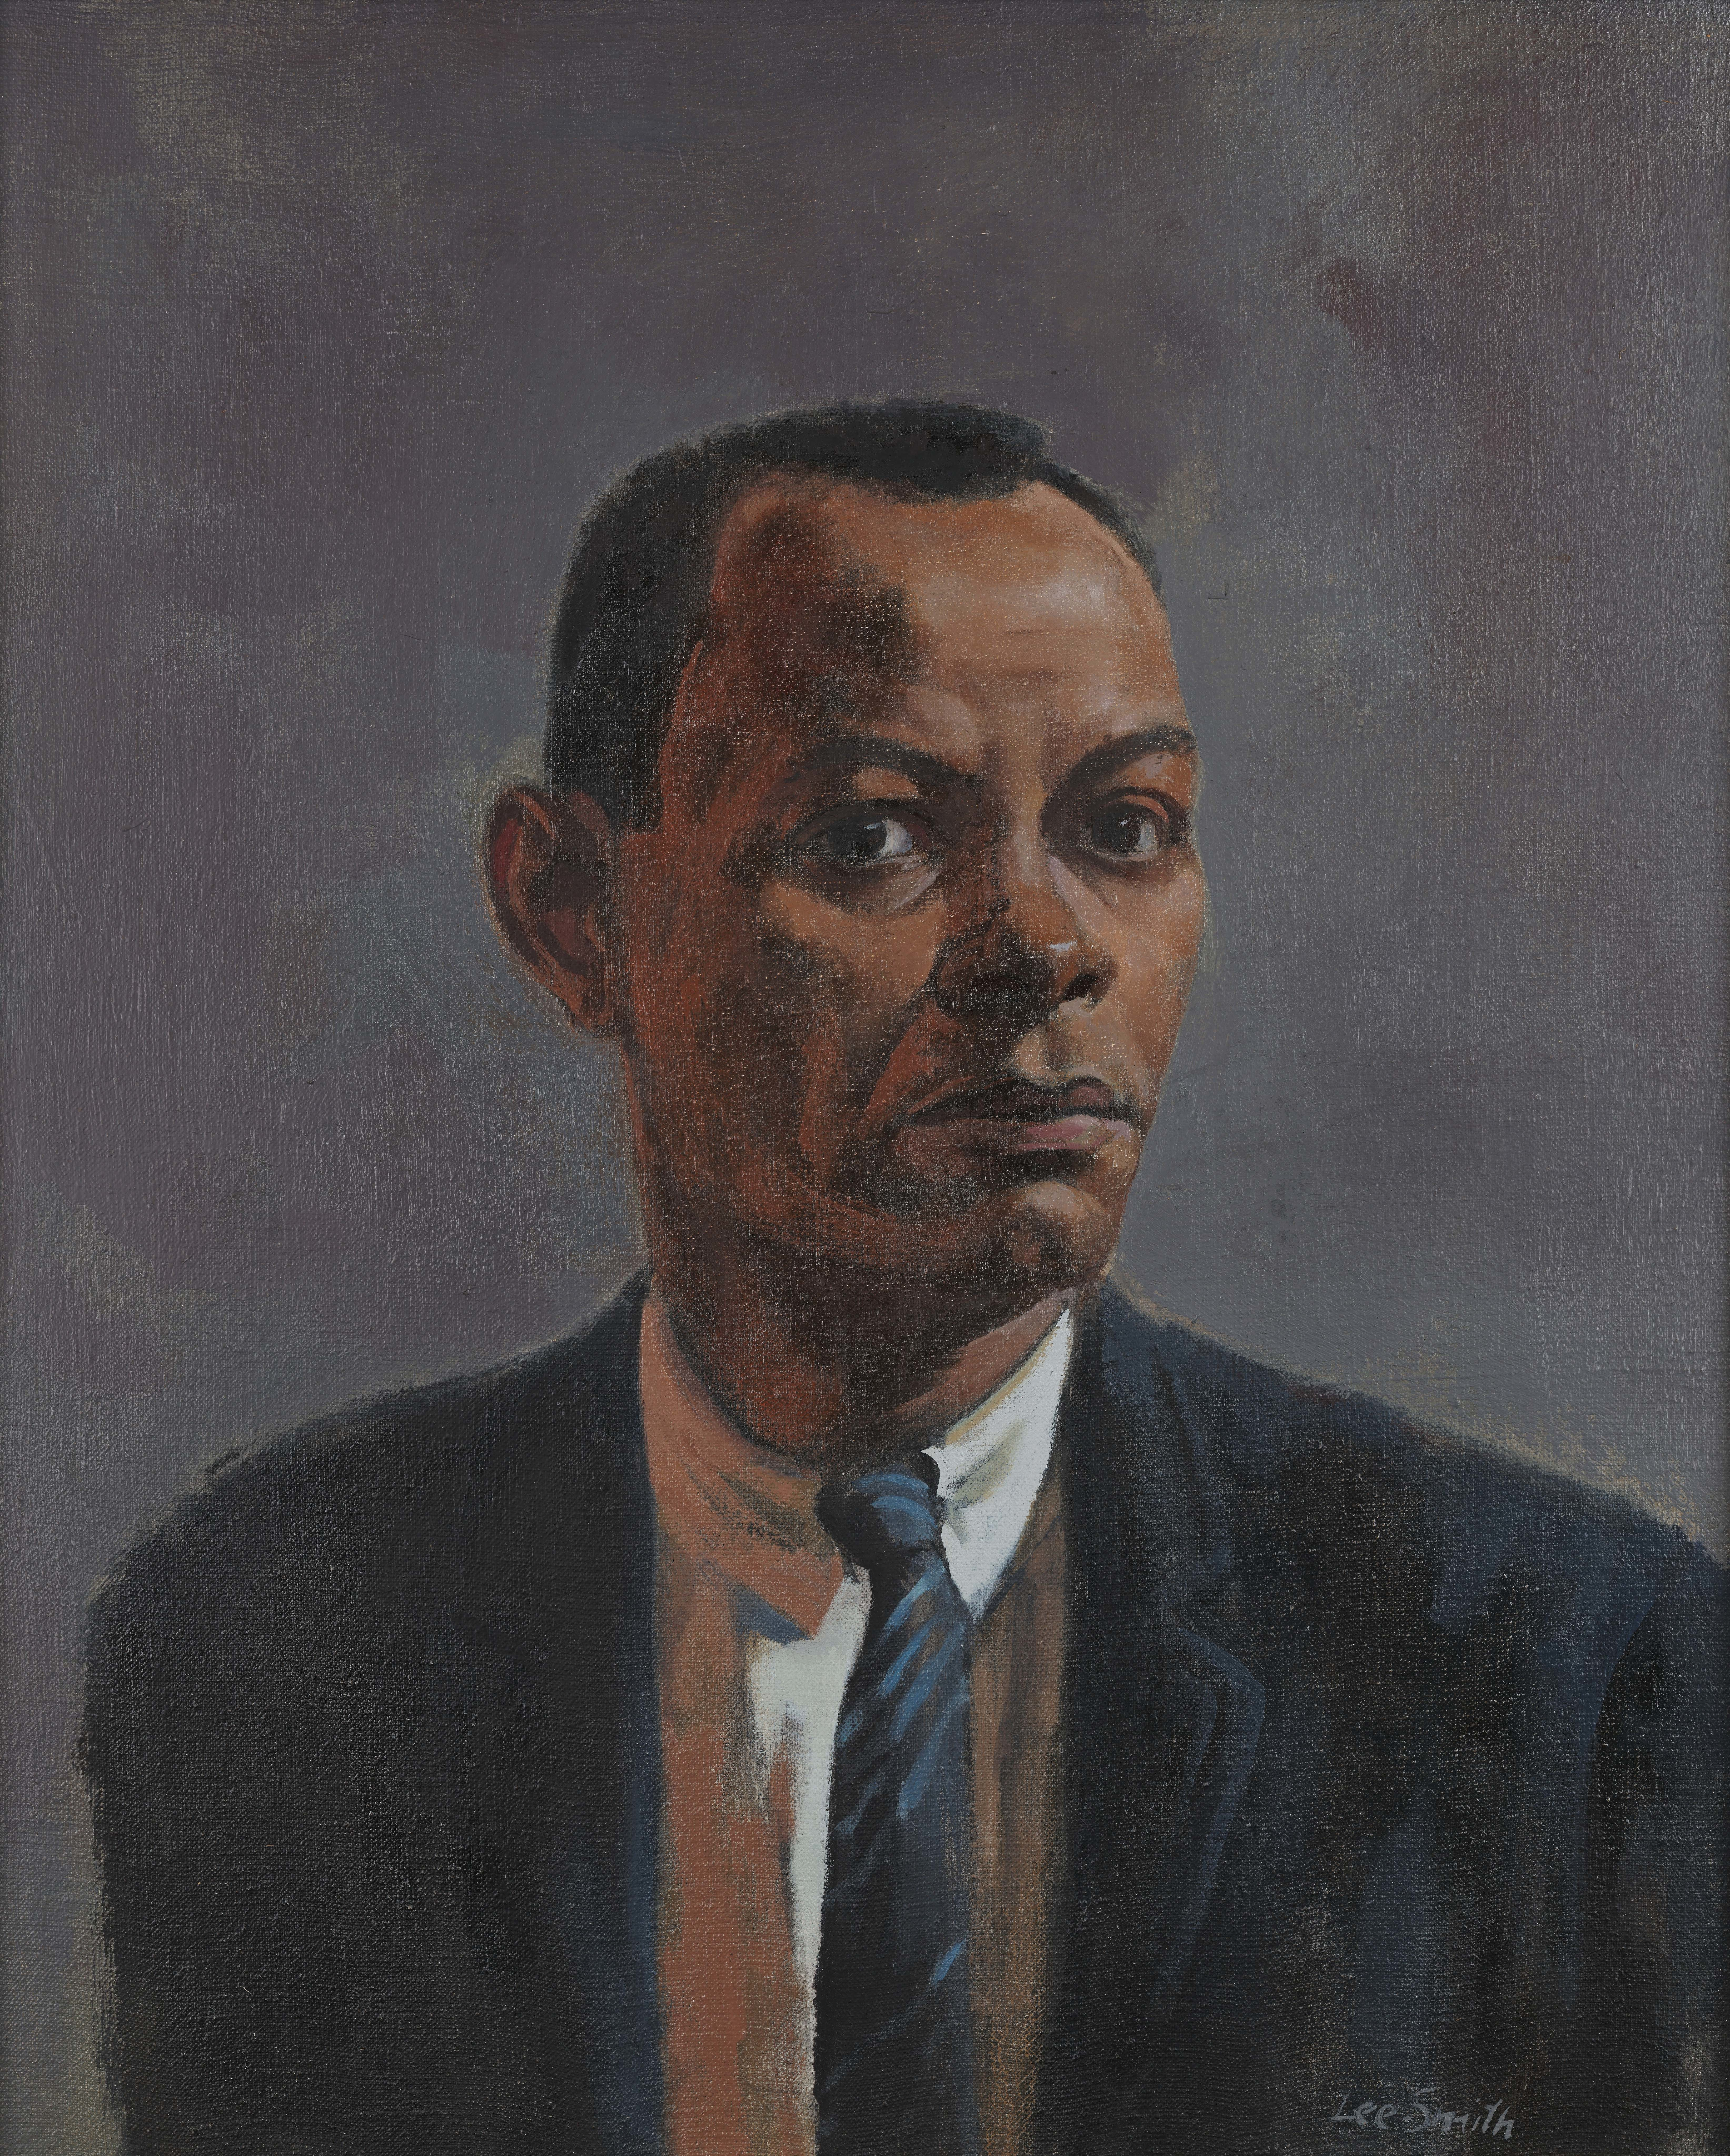 """Hughie Lee-Smith, """"Self-Portrait,"""" Oil on canvas, 24 x 20 in., National Academy of Design, New York"""